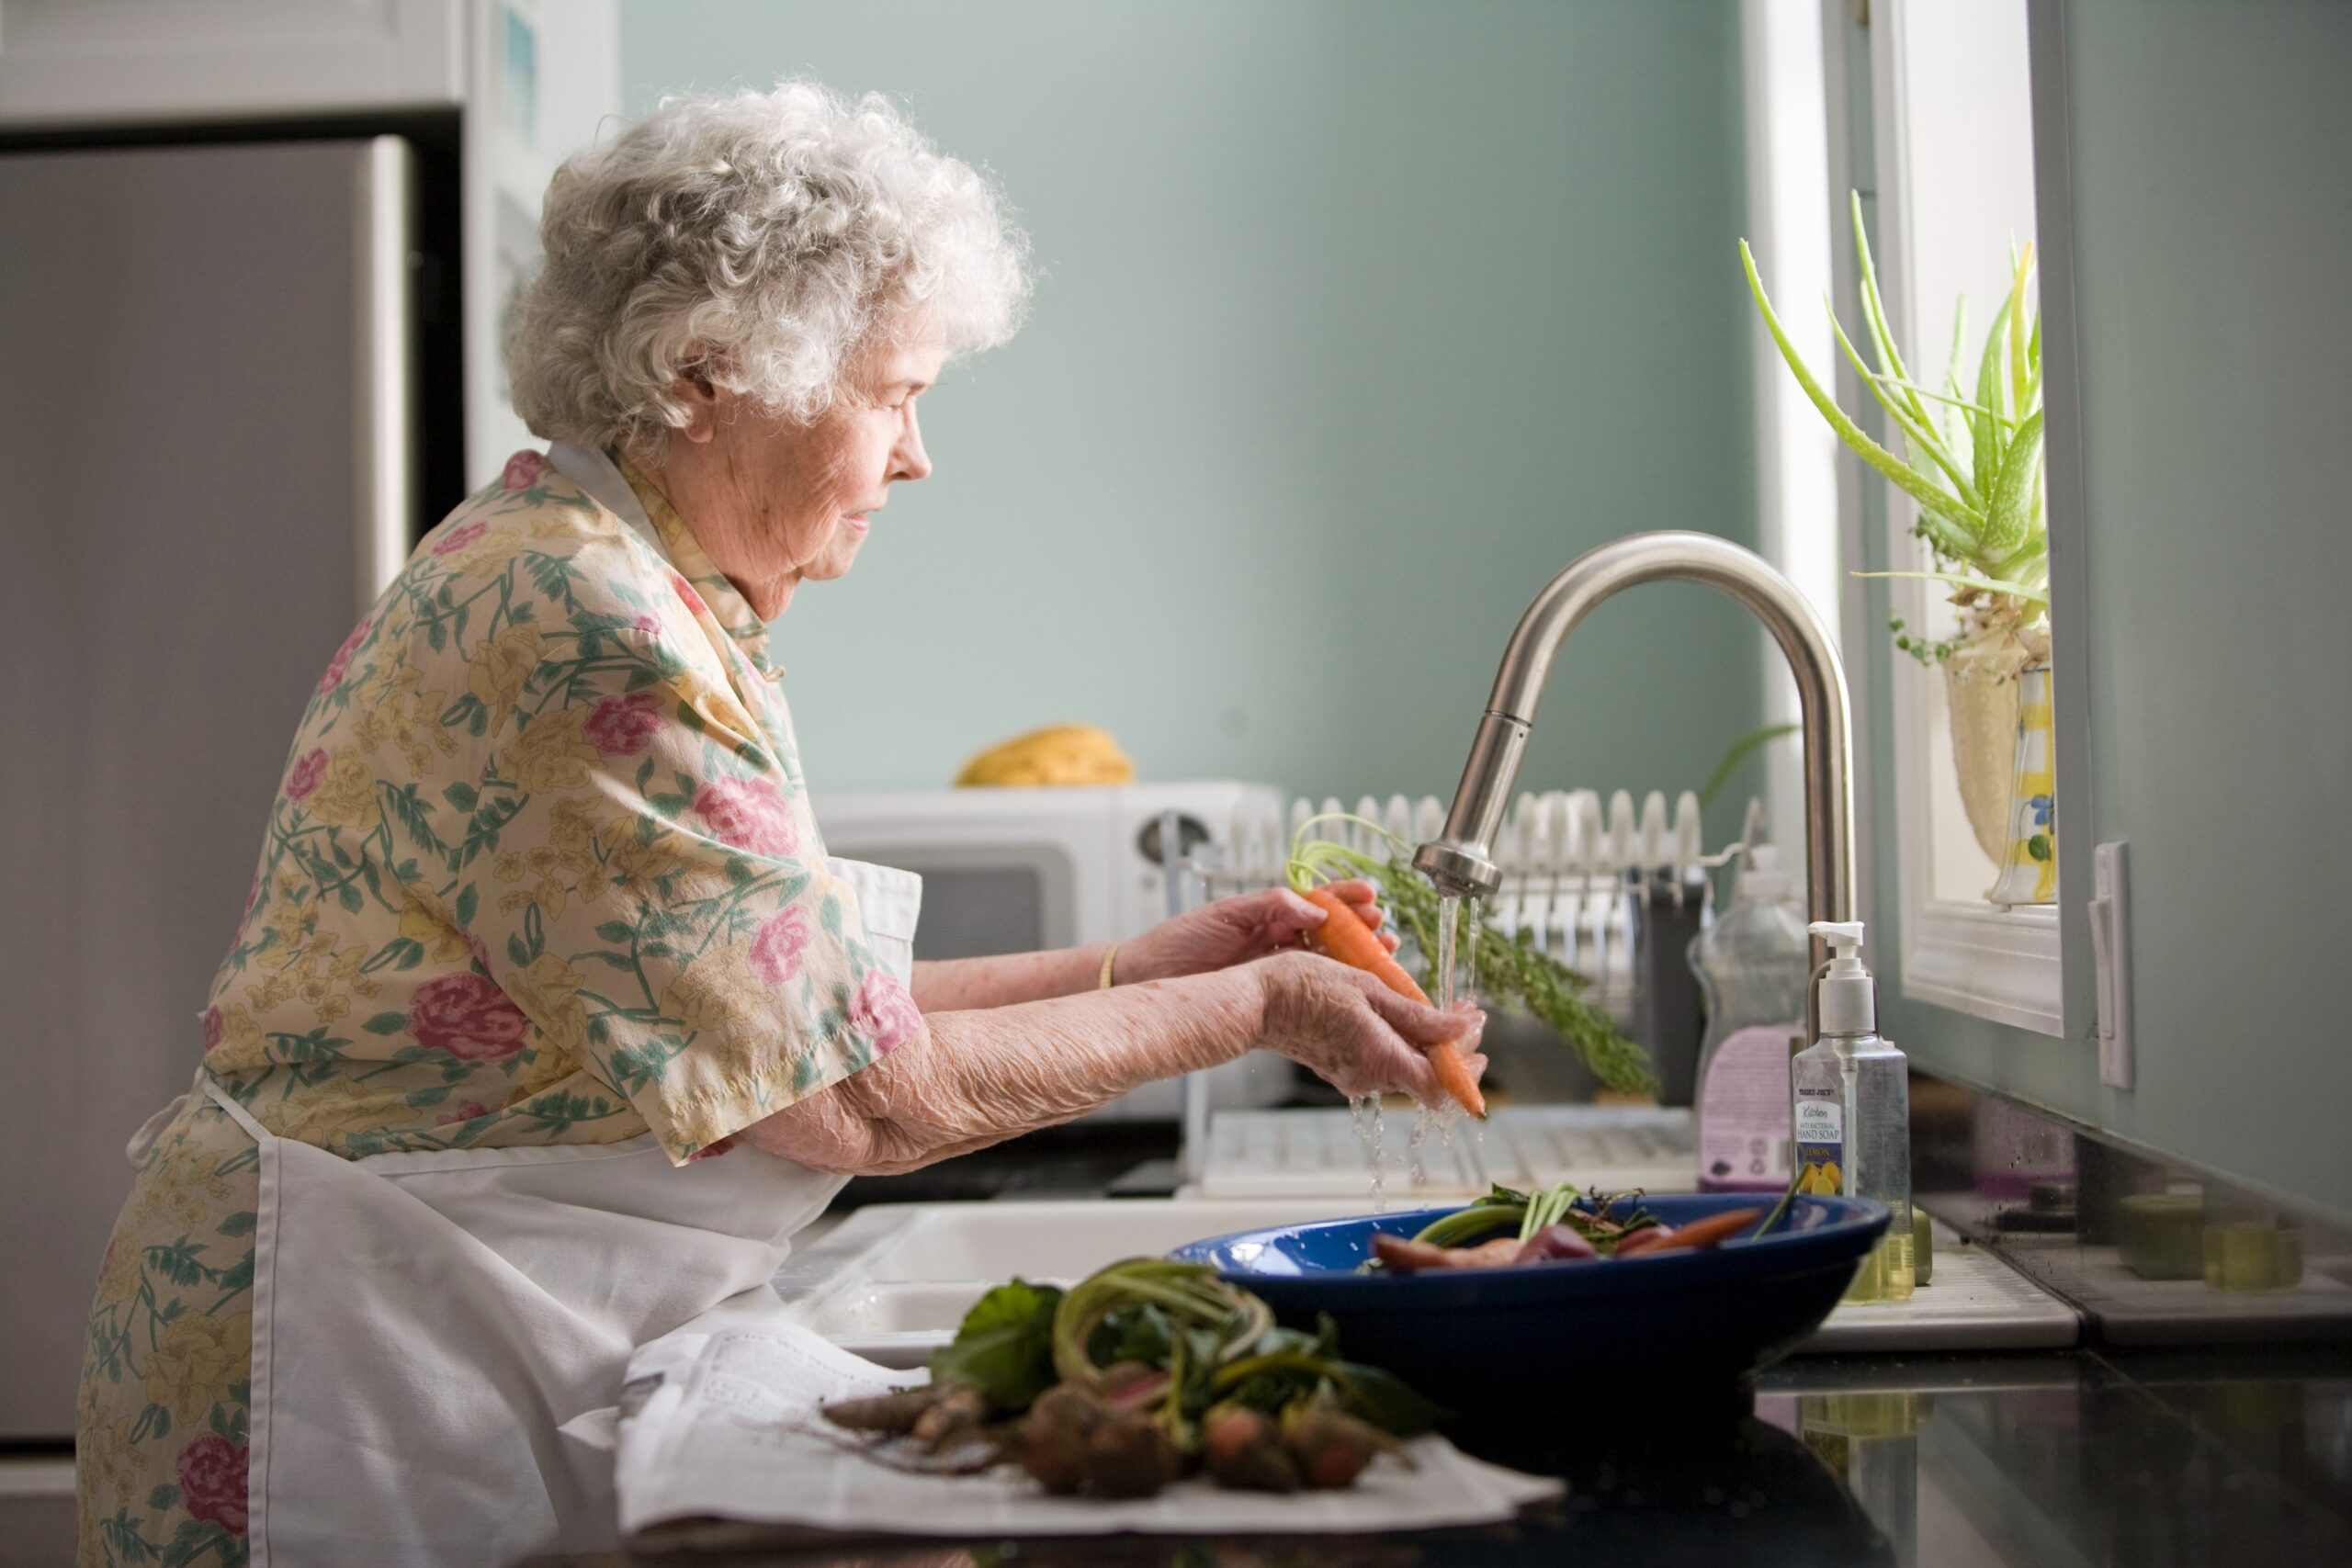 What Are the Differences Between Independent and Assisted Living?